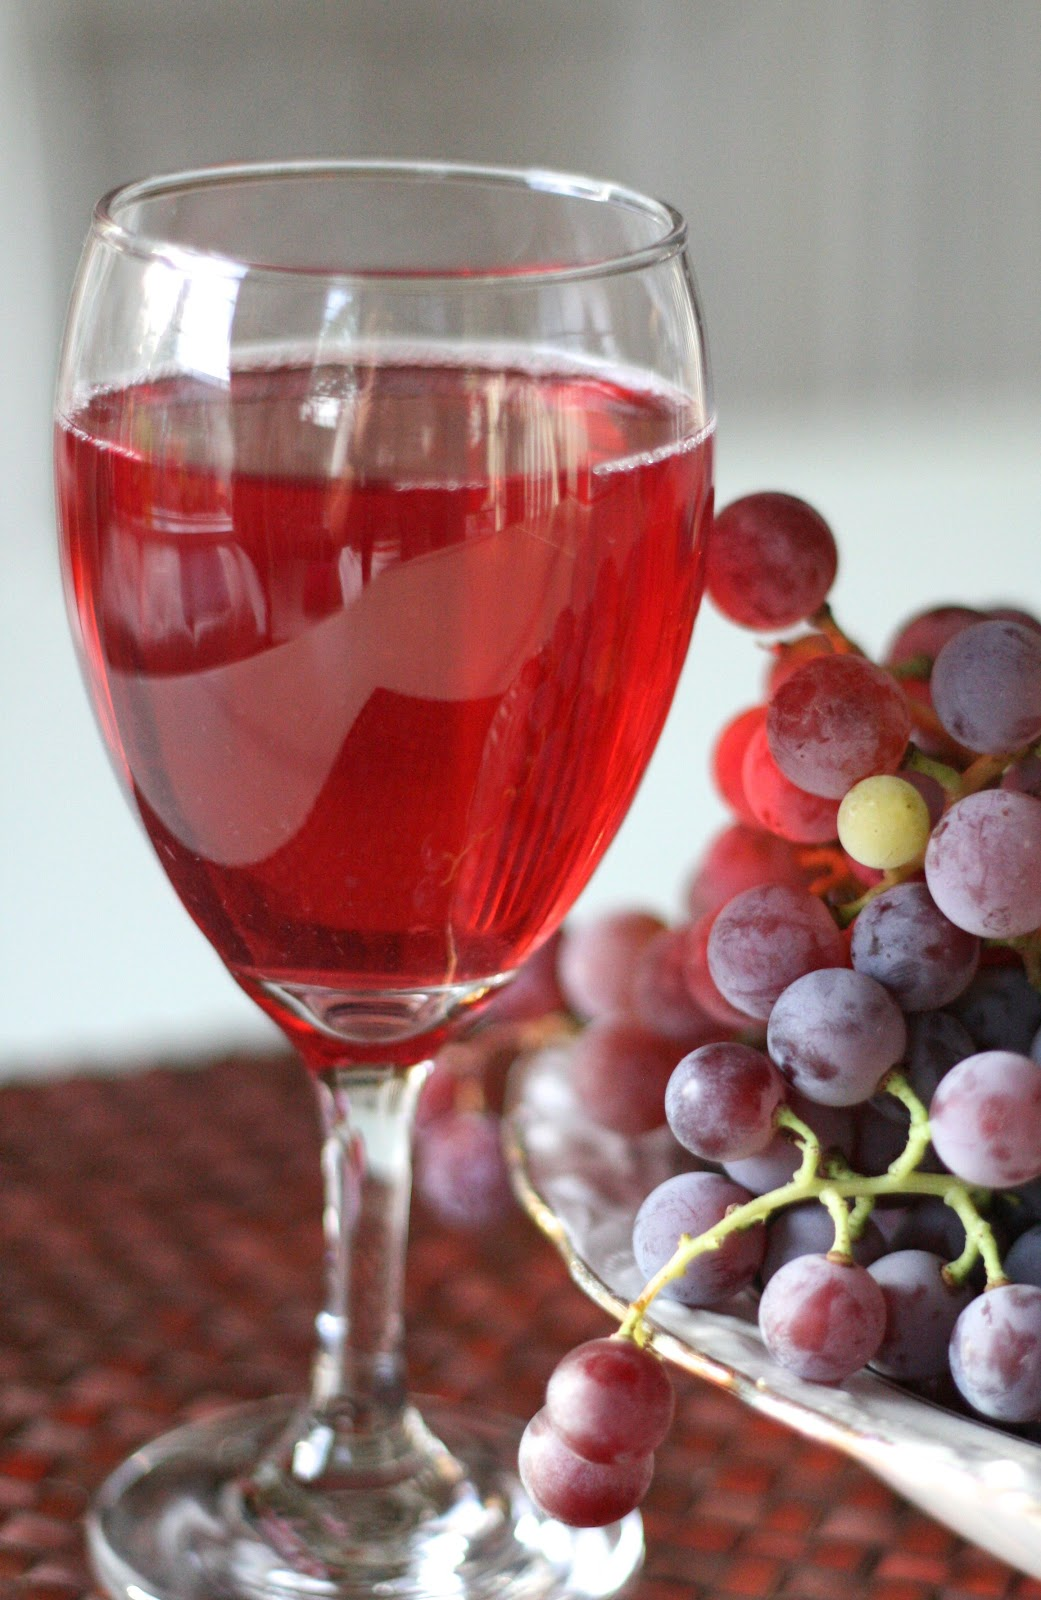 Grape Juice Wallpapers High Quality Download 1041x1600